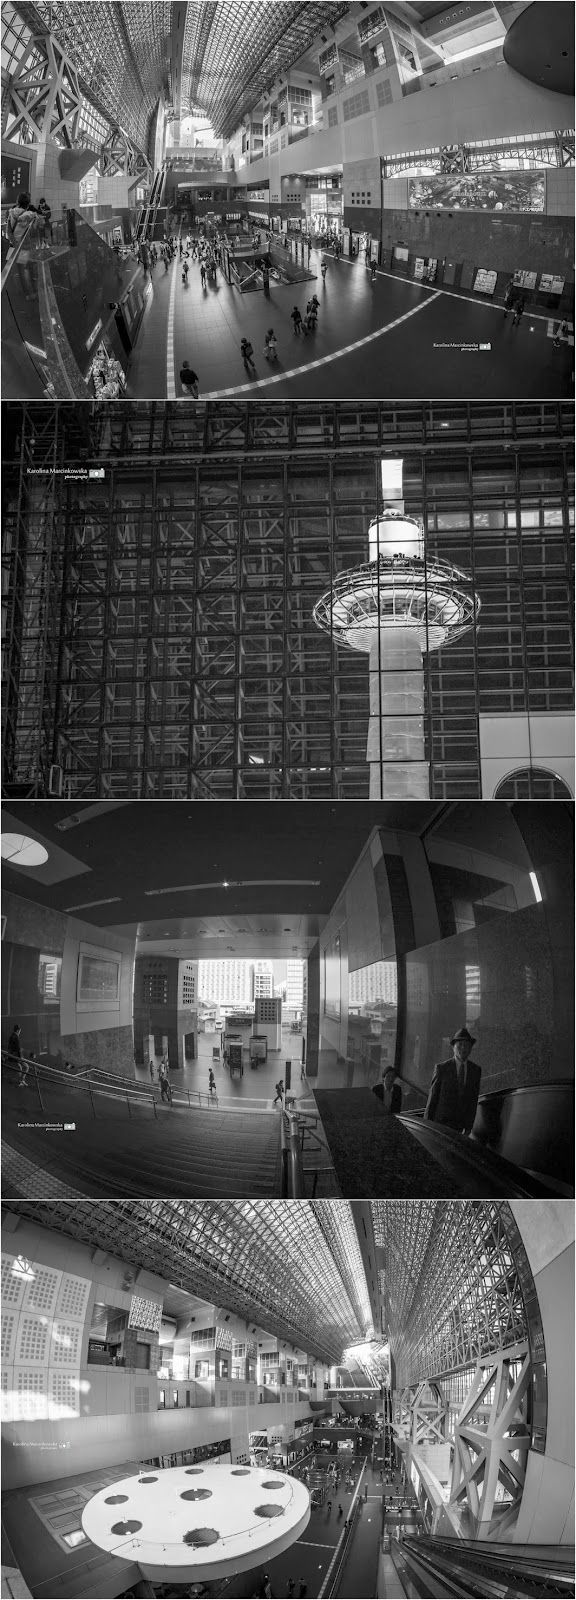 Kyoto Station - architecture and people, Japan